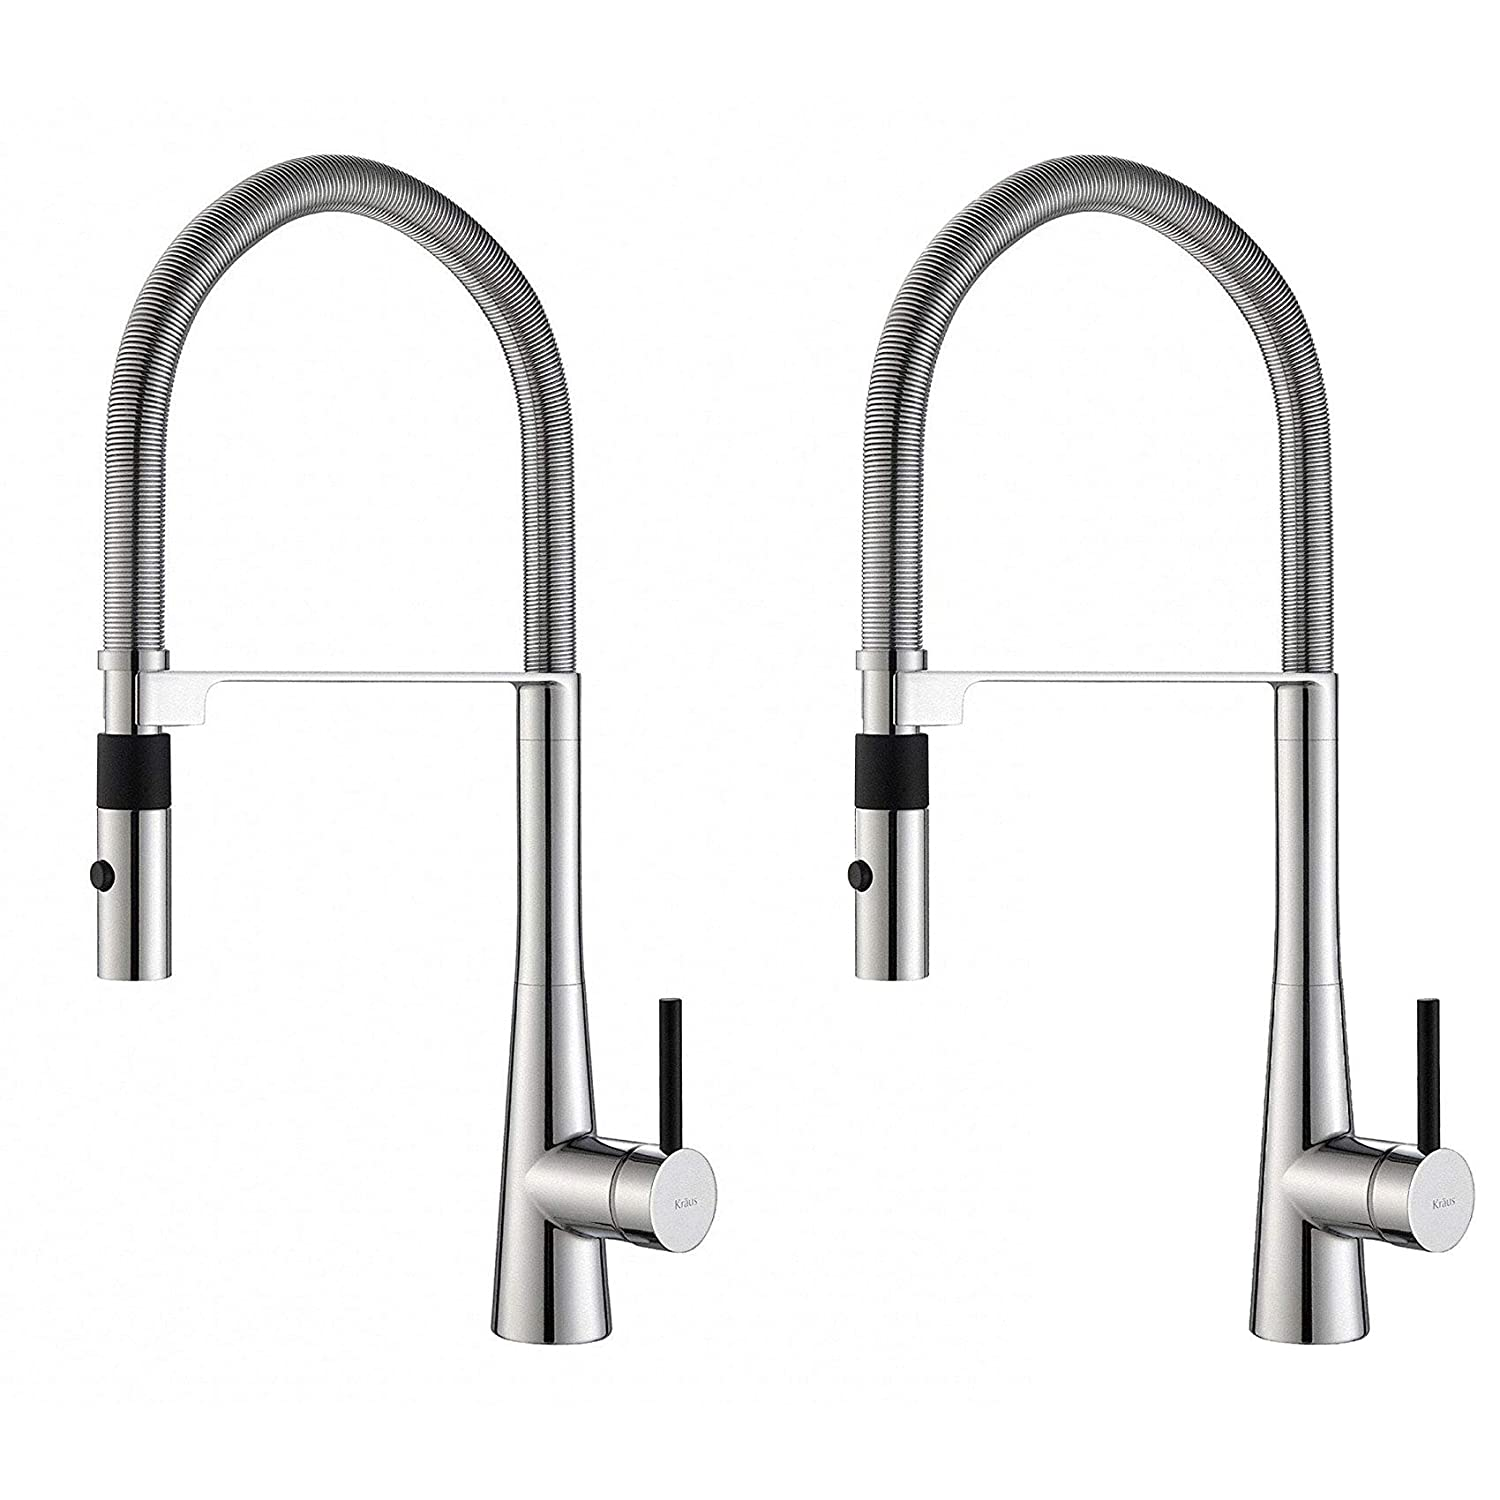 "Kraus Crespo 20"" Single Handle Kitchen Faucet w/Pull Down Sprayhead (2 Pack)"